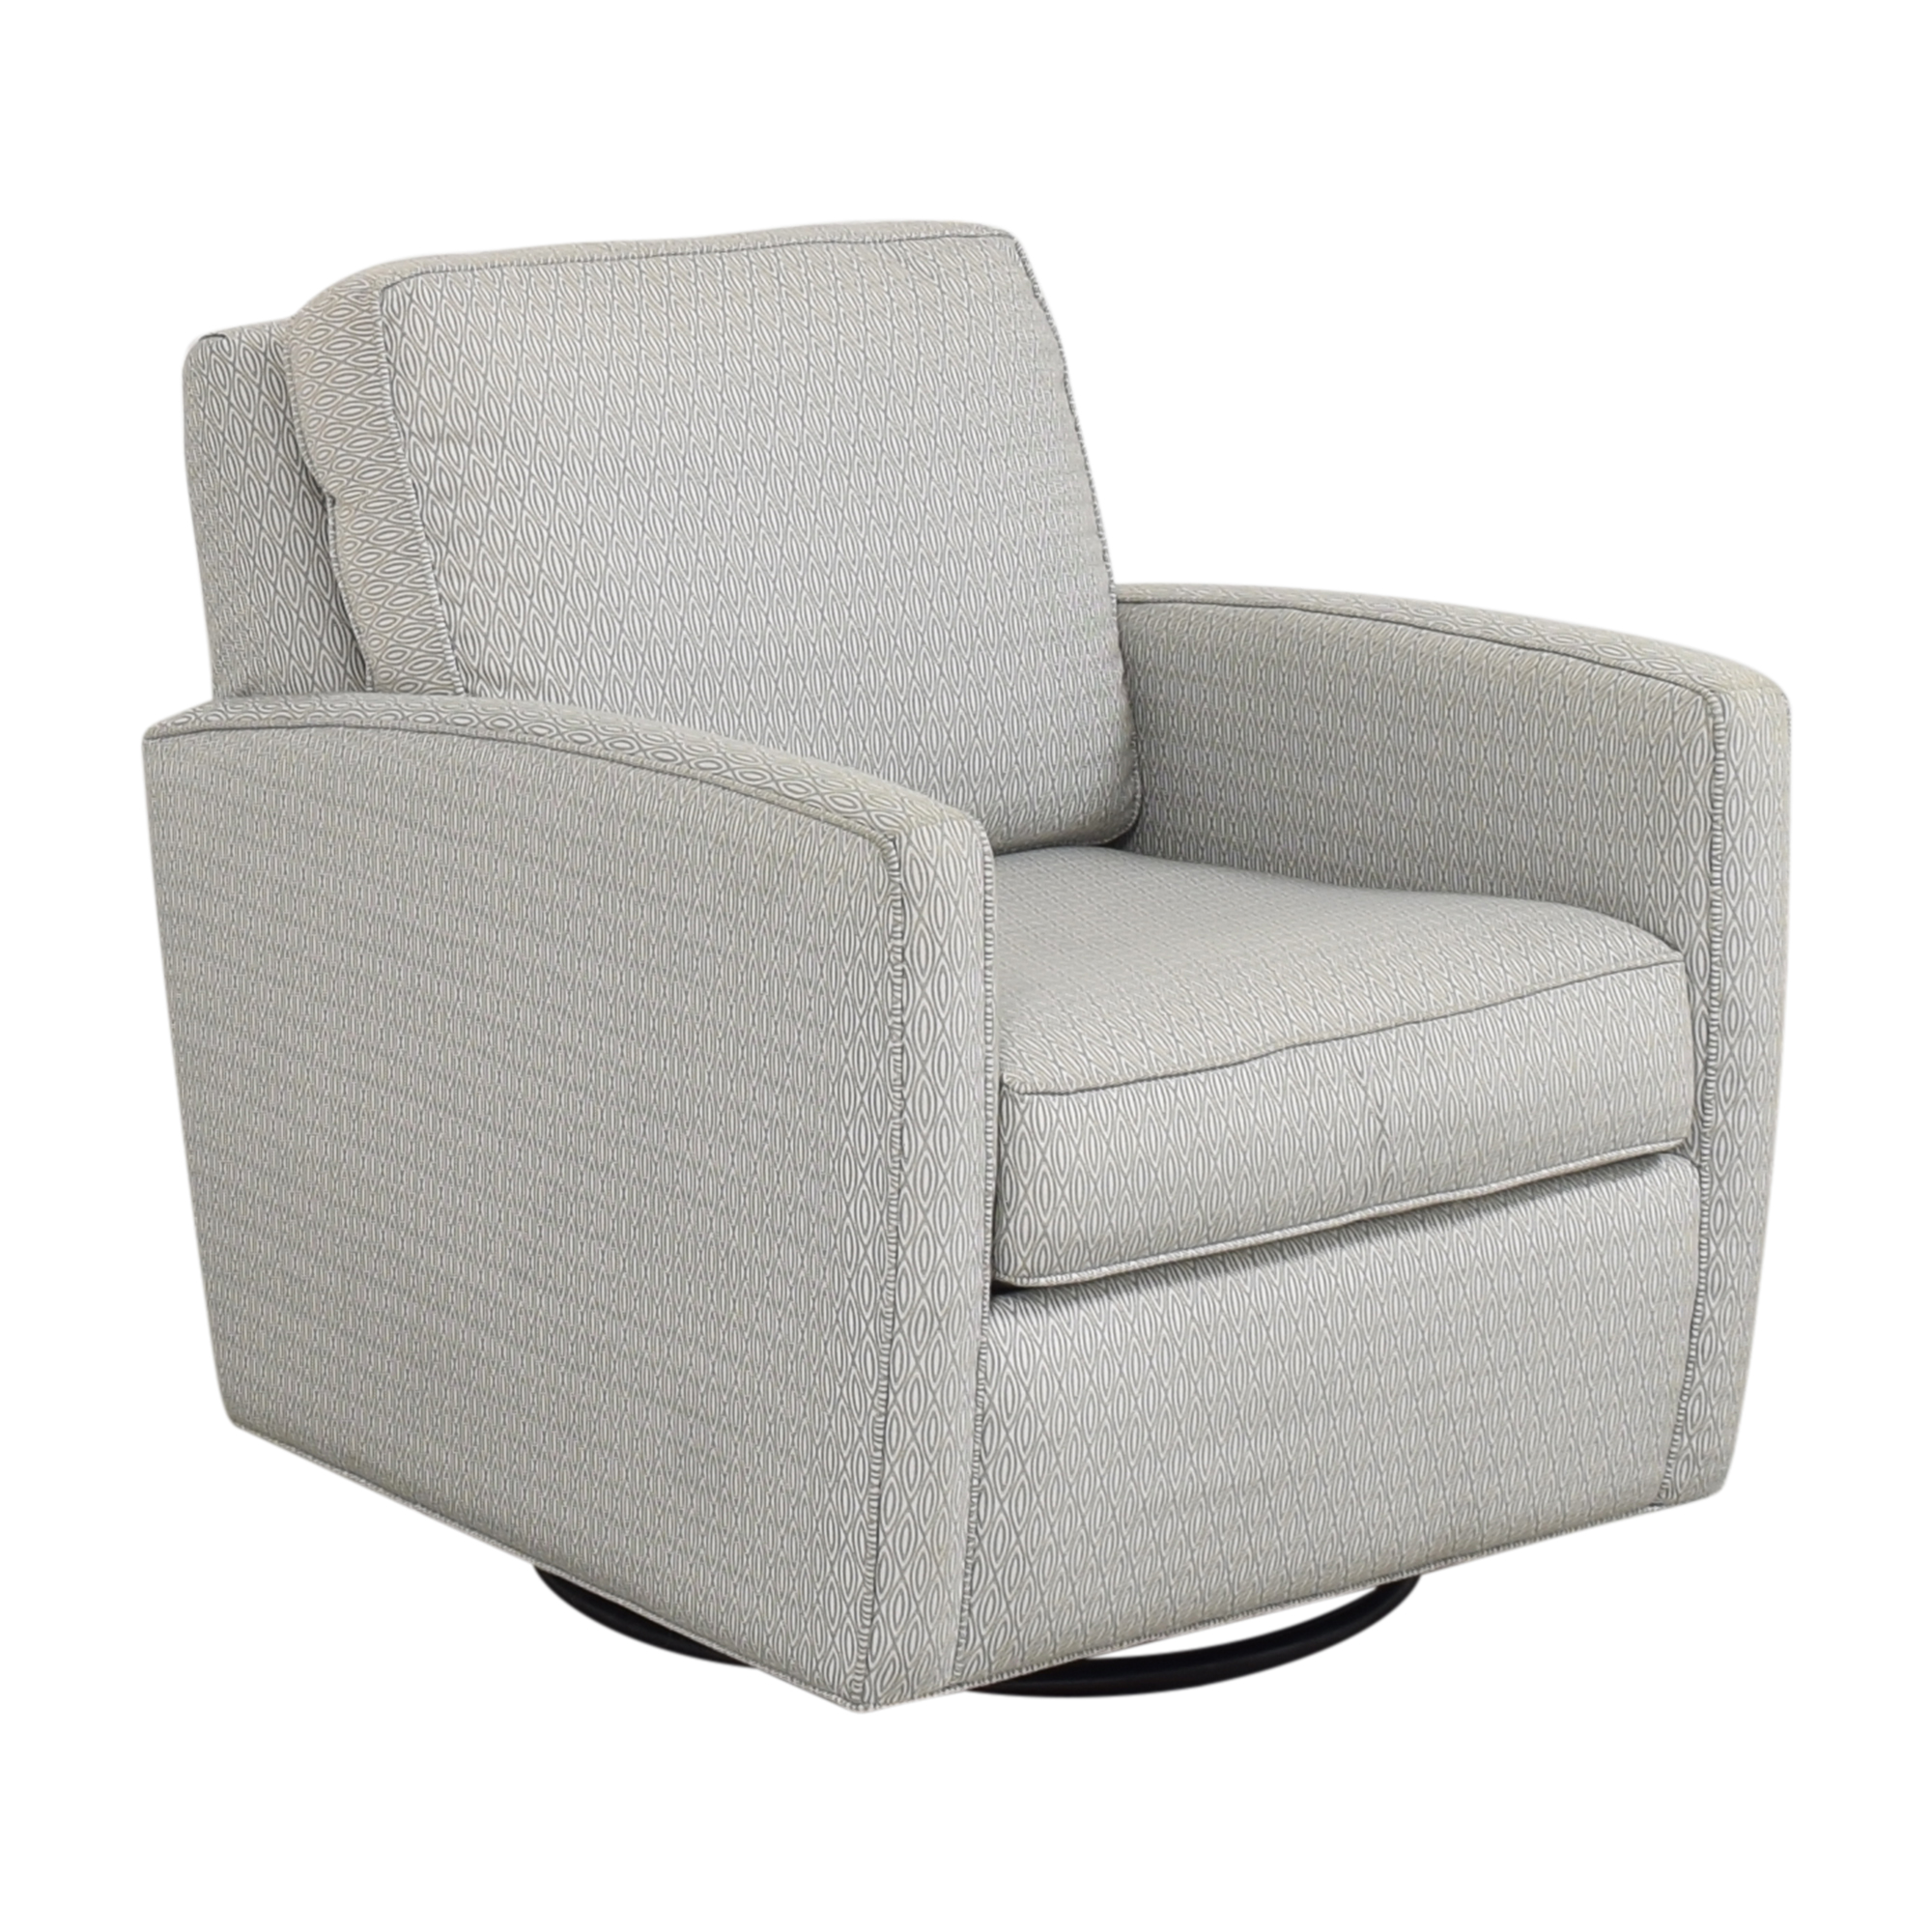 Younger Furniture Lincoln Swivel Glider Chair sale